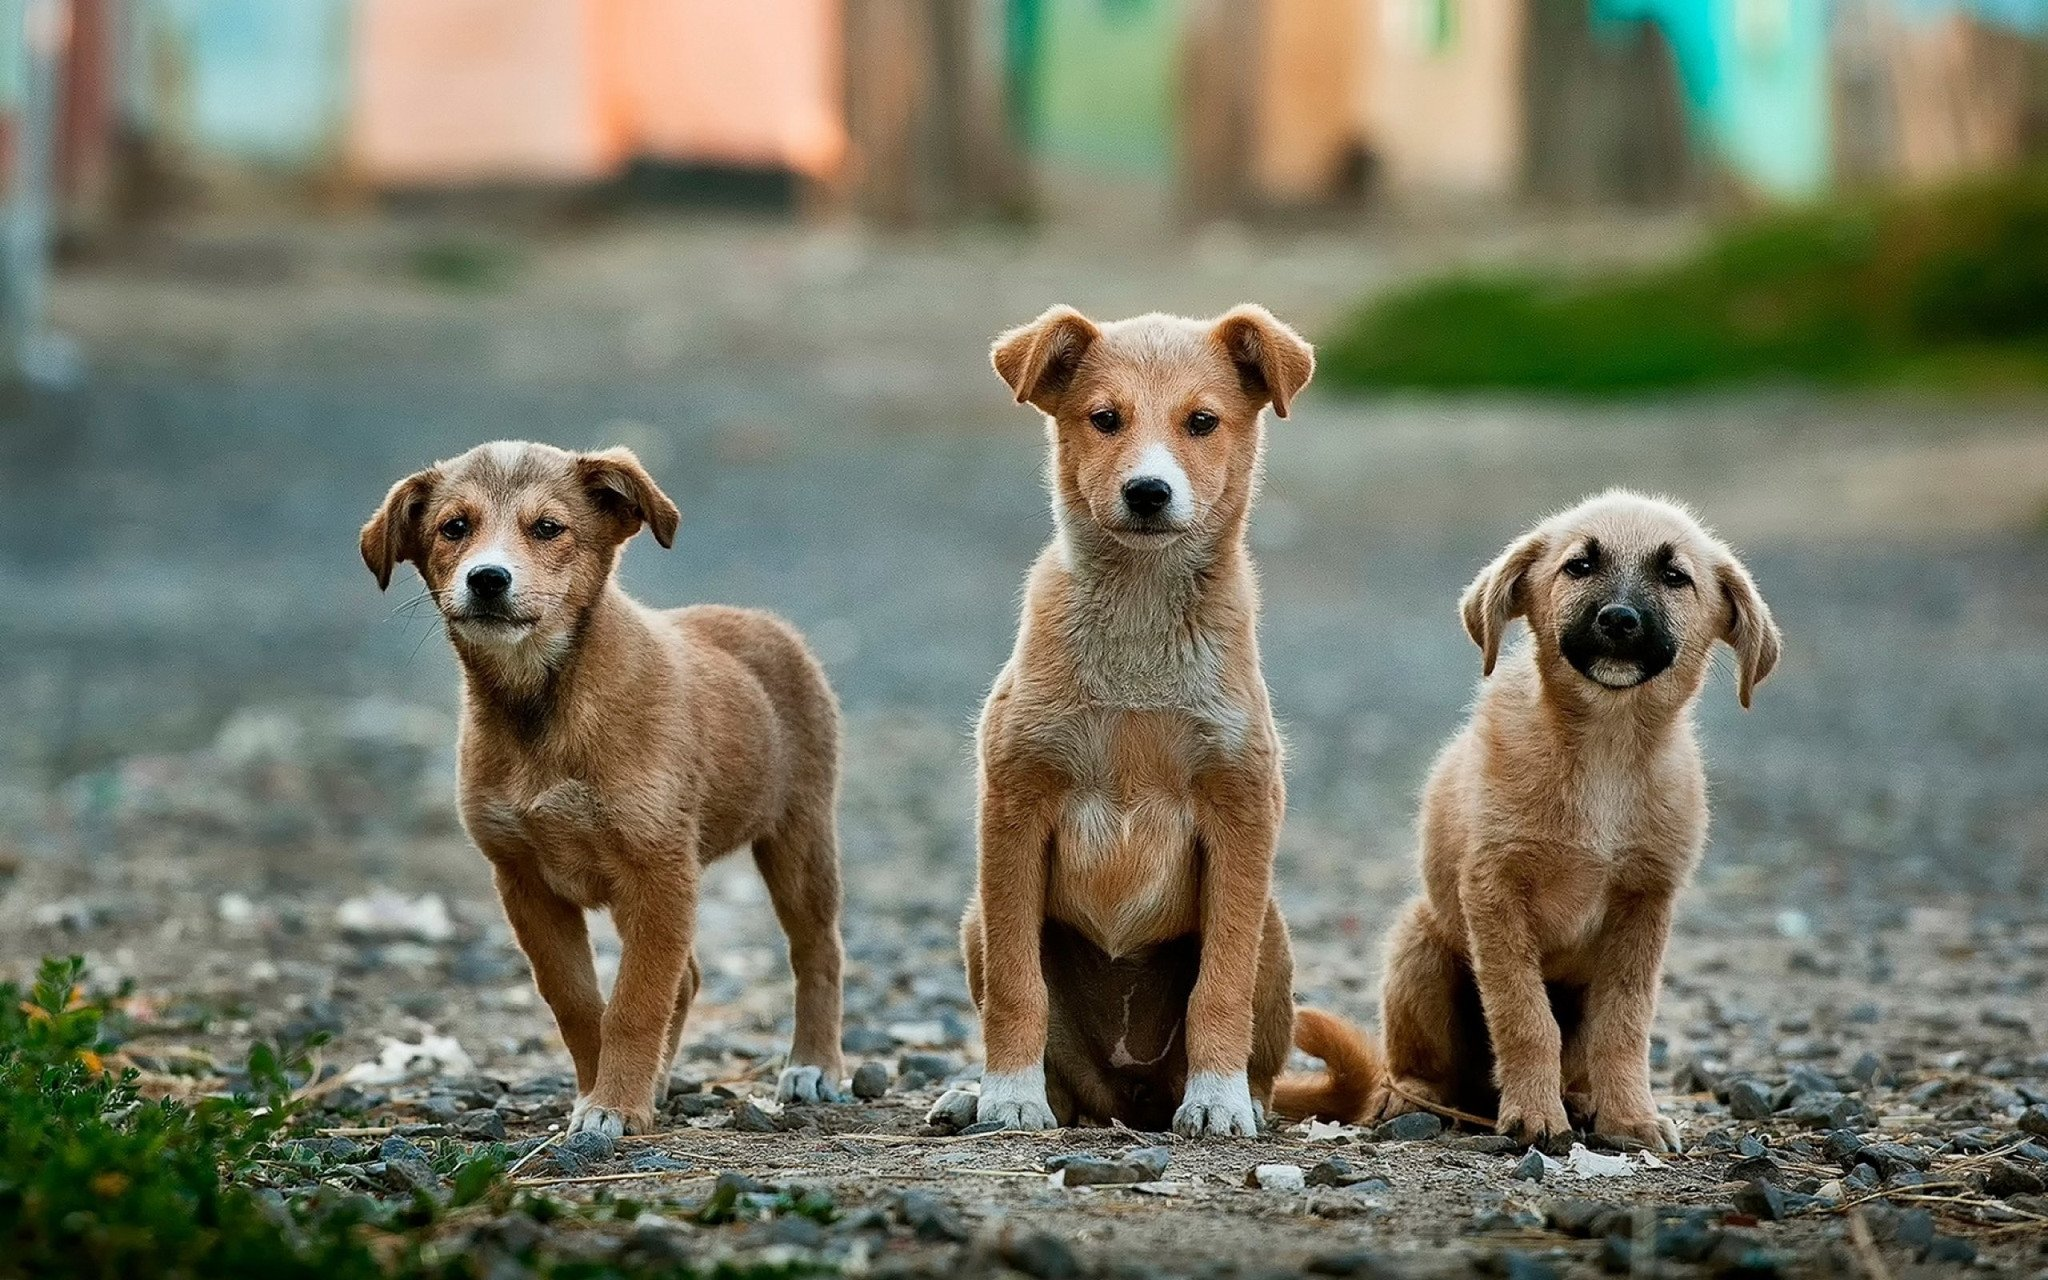 Stray puppies without their mom may be missing key bacteria for a healthy gut